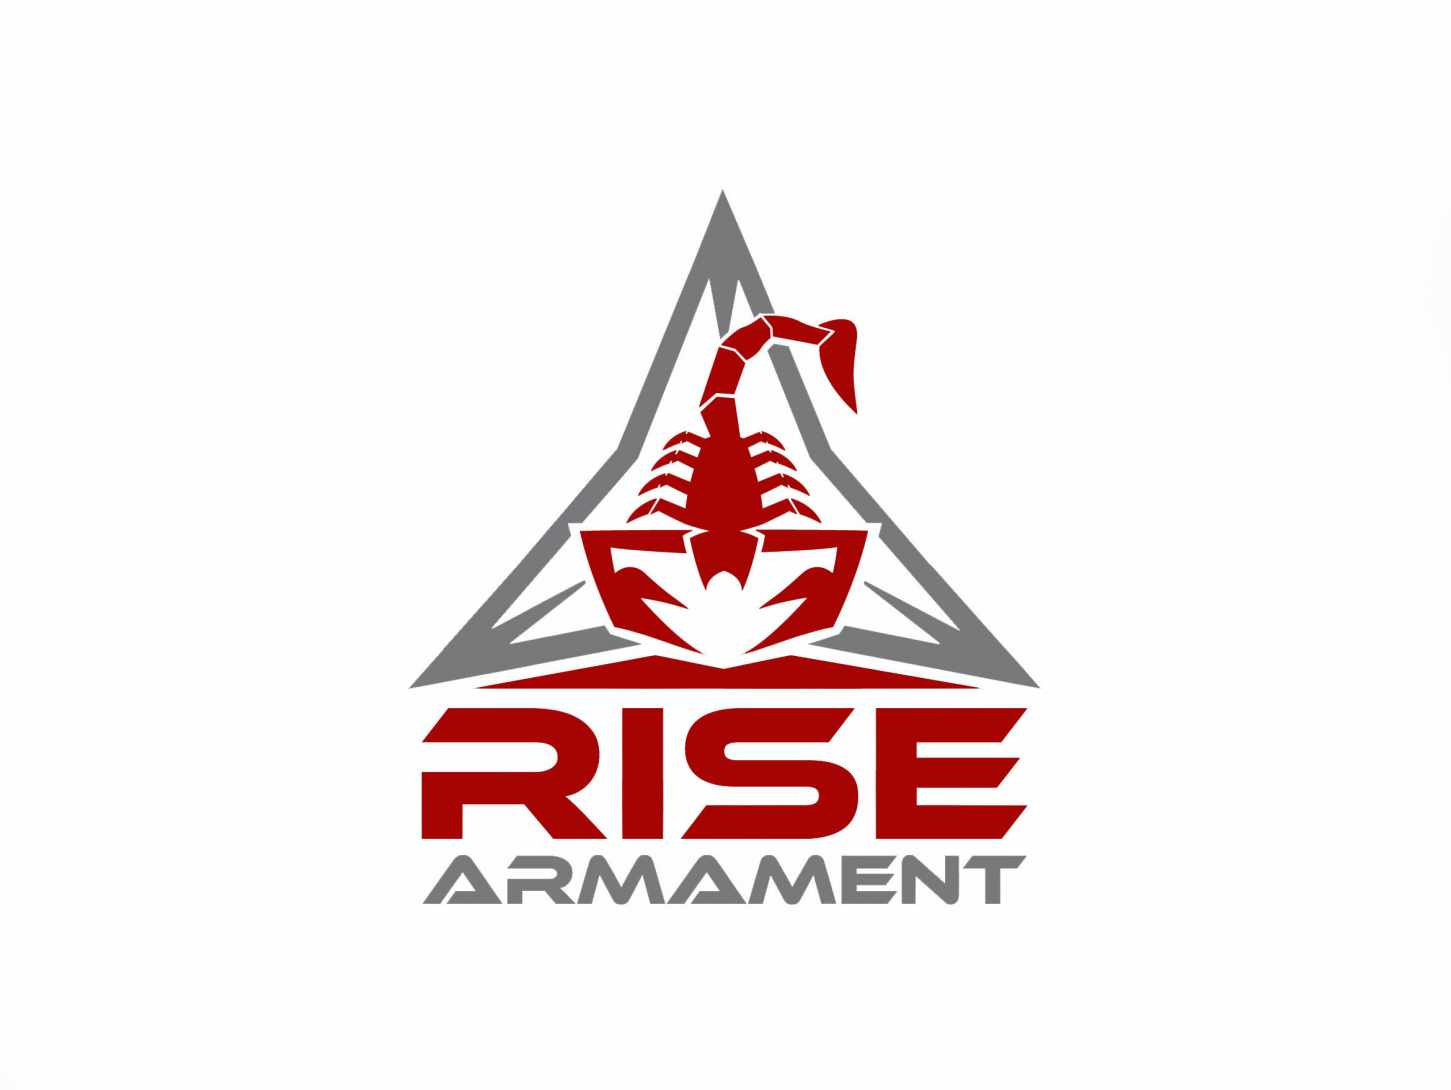 Rise_Armament_Logo